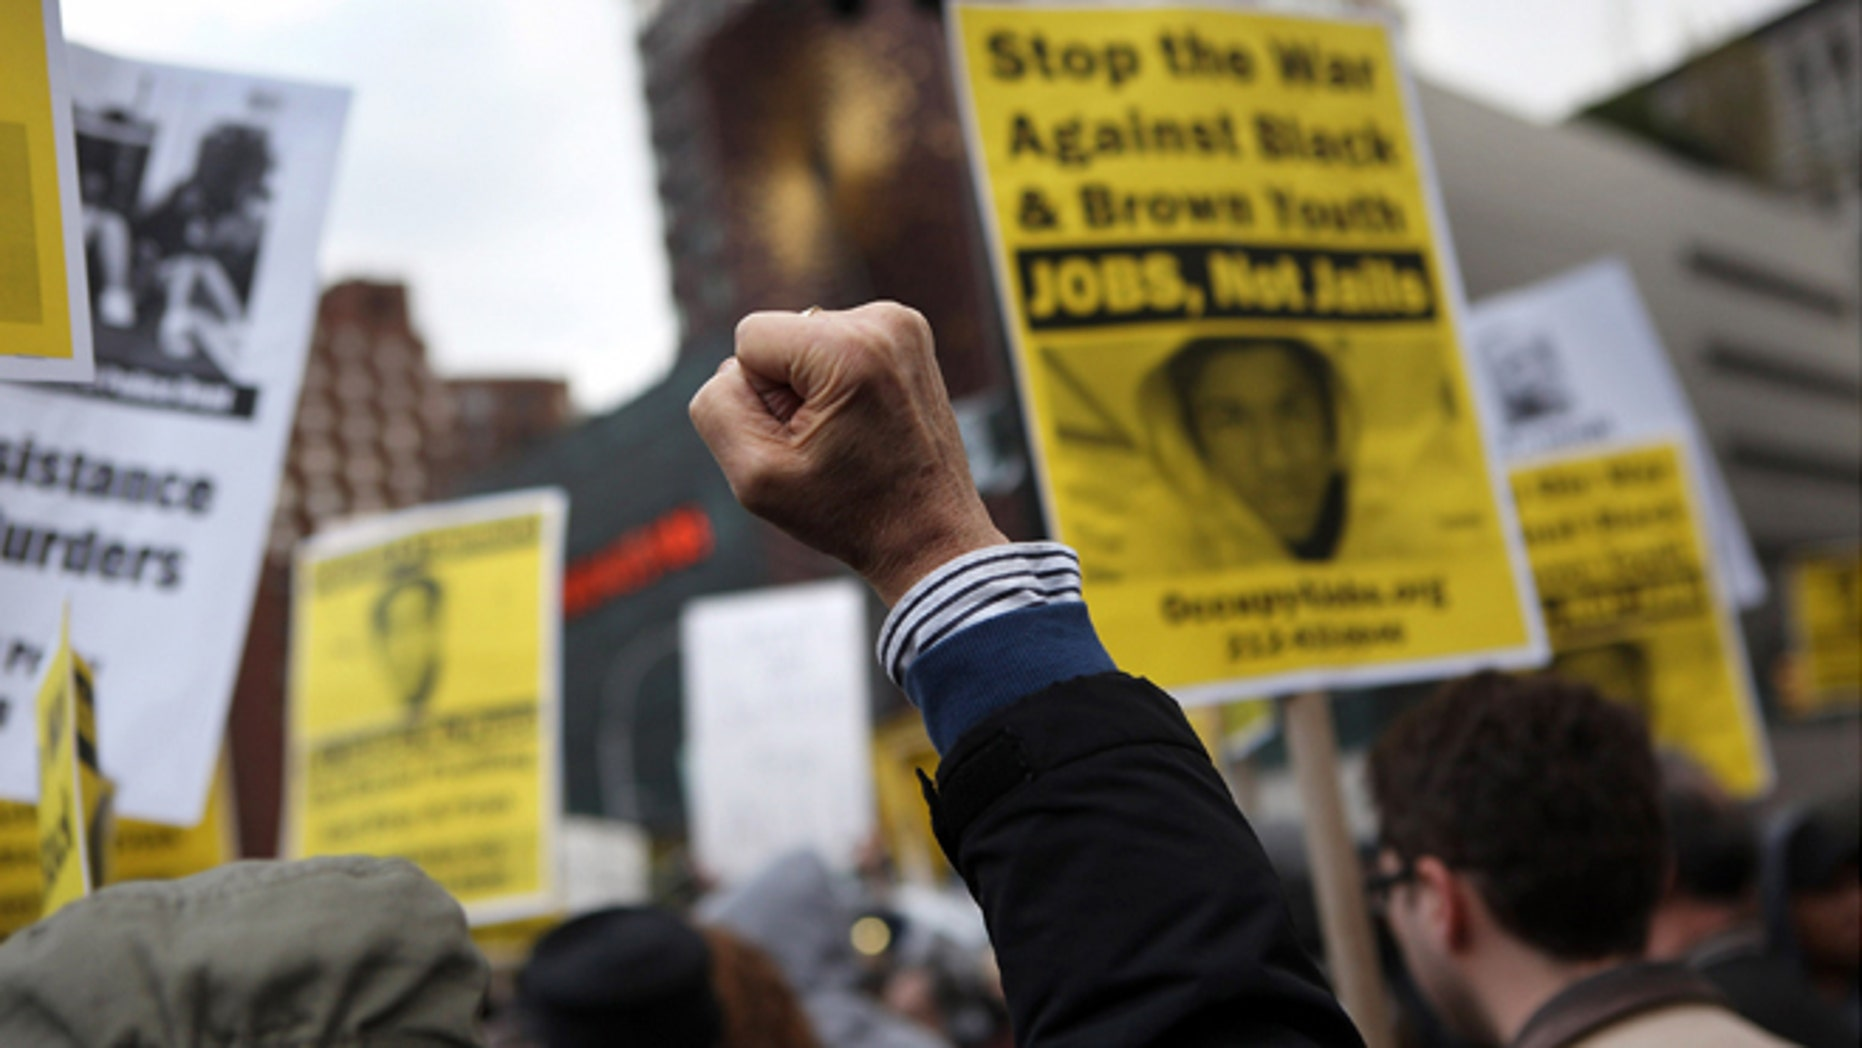 Protesters gather in support of Trayvon Martin at a demonstration on April 10, 2012 in New York City.